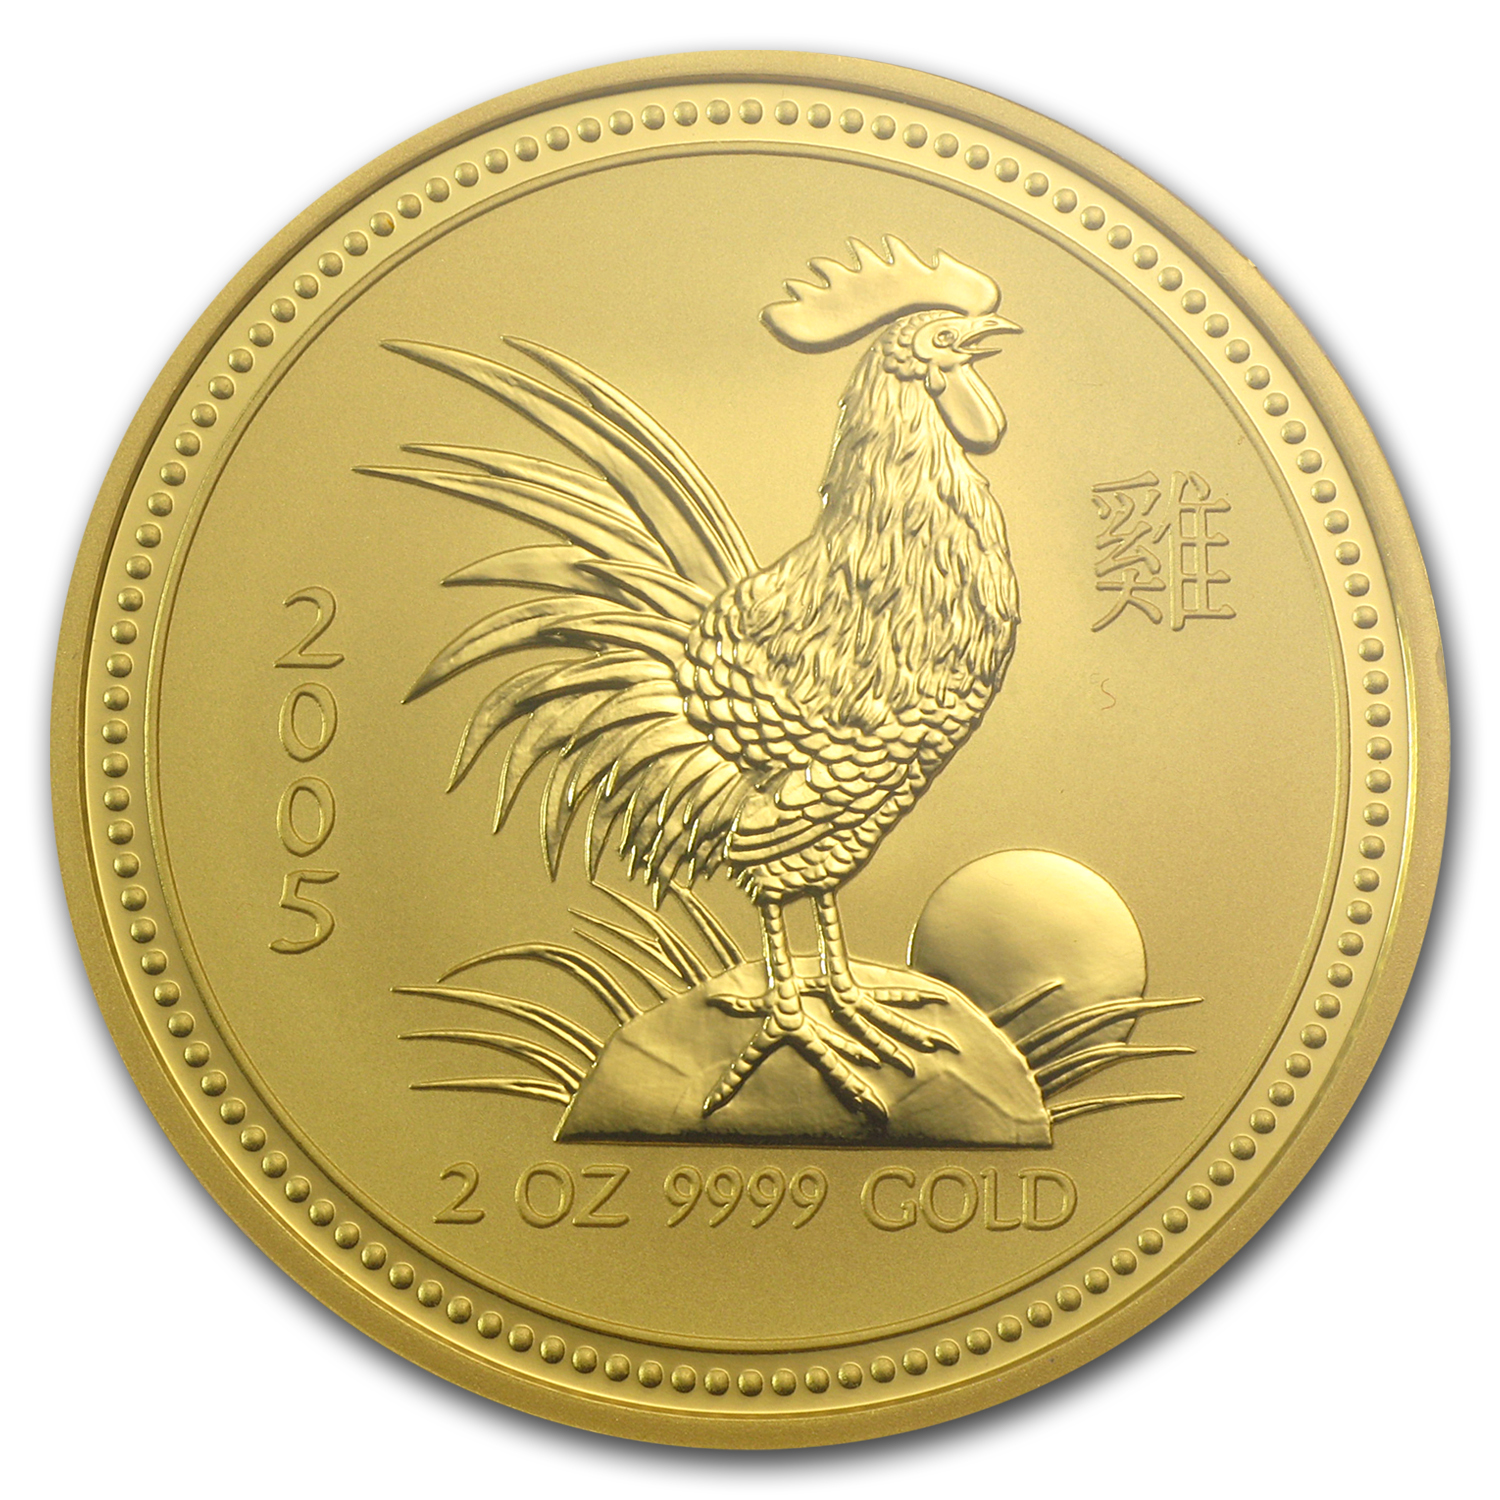 2005 2 oz Gold Lunar Year of the Rooster MS-70 PCGS (Series I)